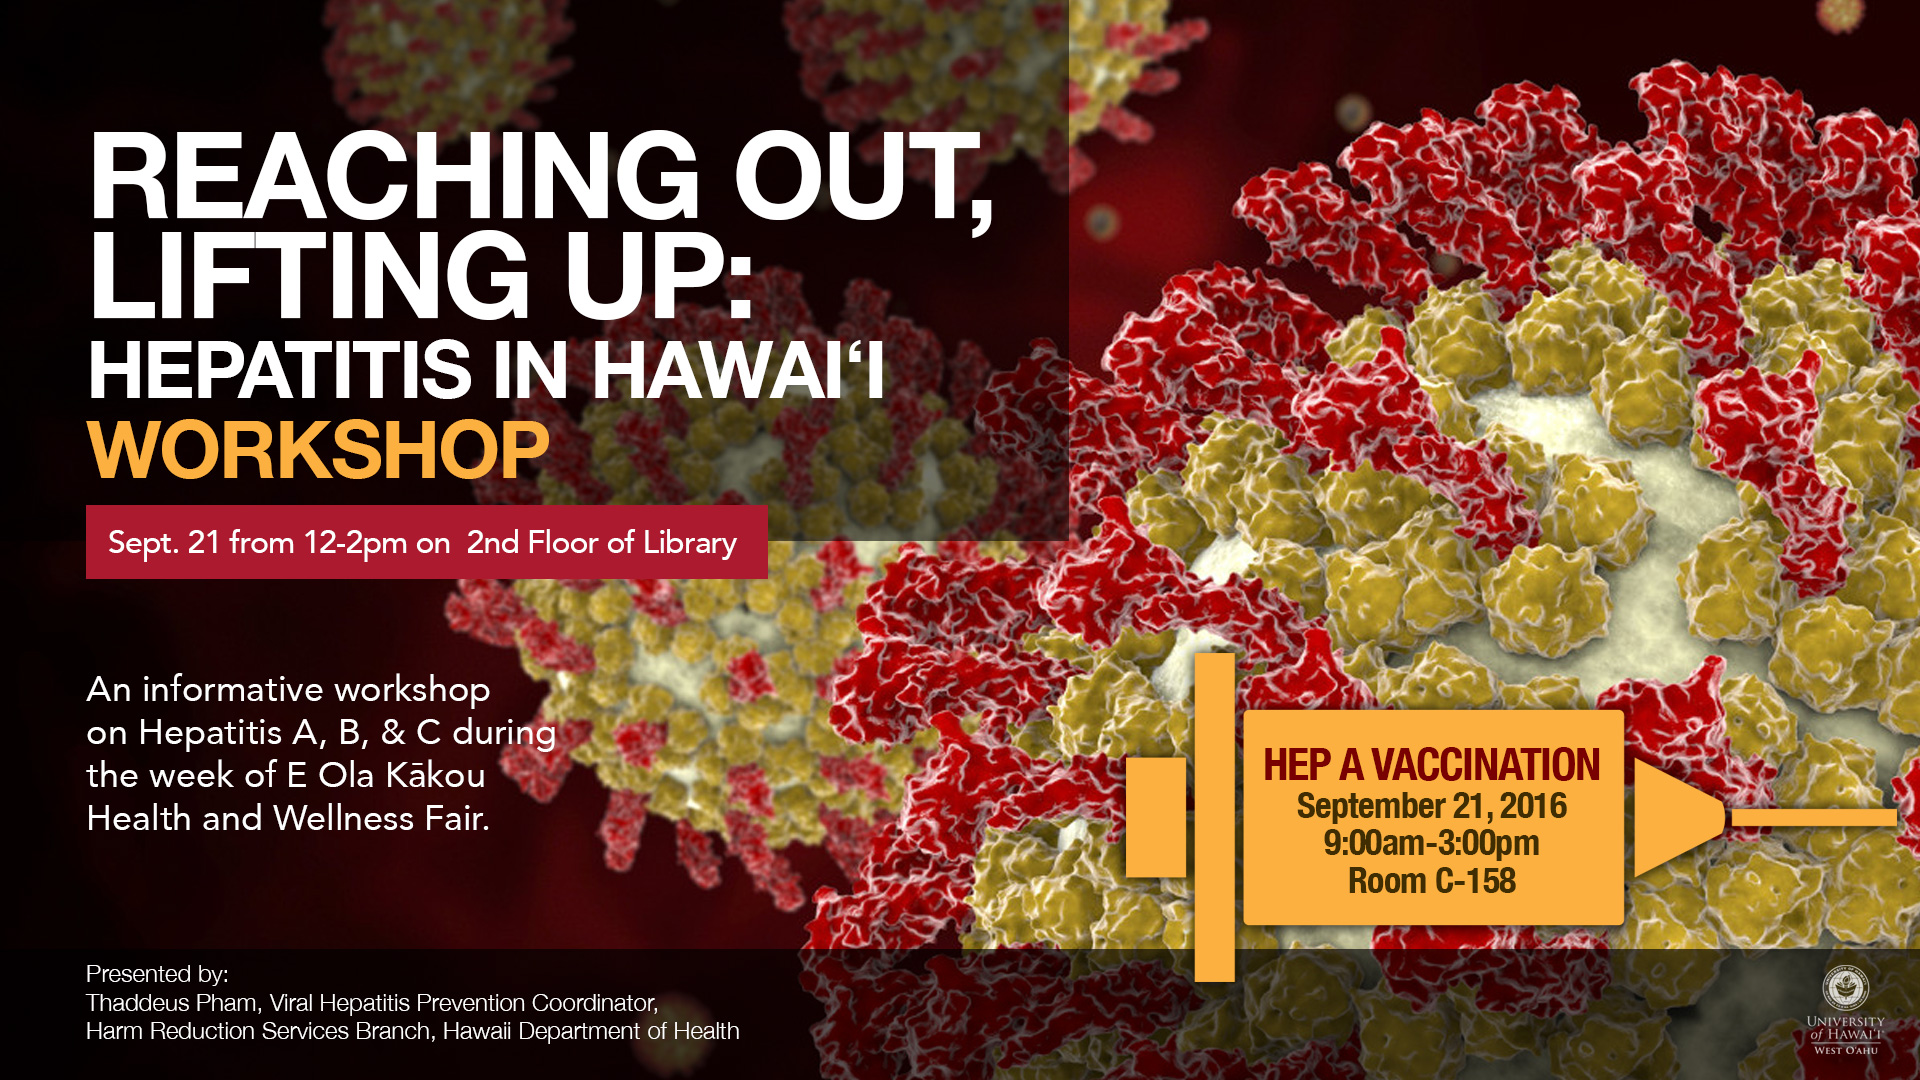 Flyer for Reaching Out, Lifting Up: Hepatitis in Hawaii Workshop, on Sept. 21, 2016, from 12-2 p.m. in the Library's second floor.